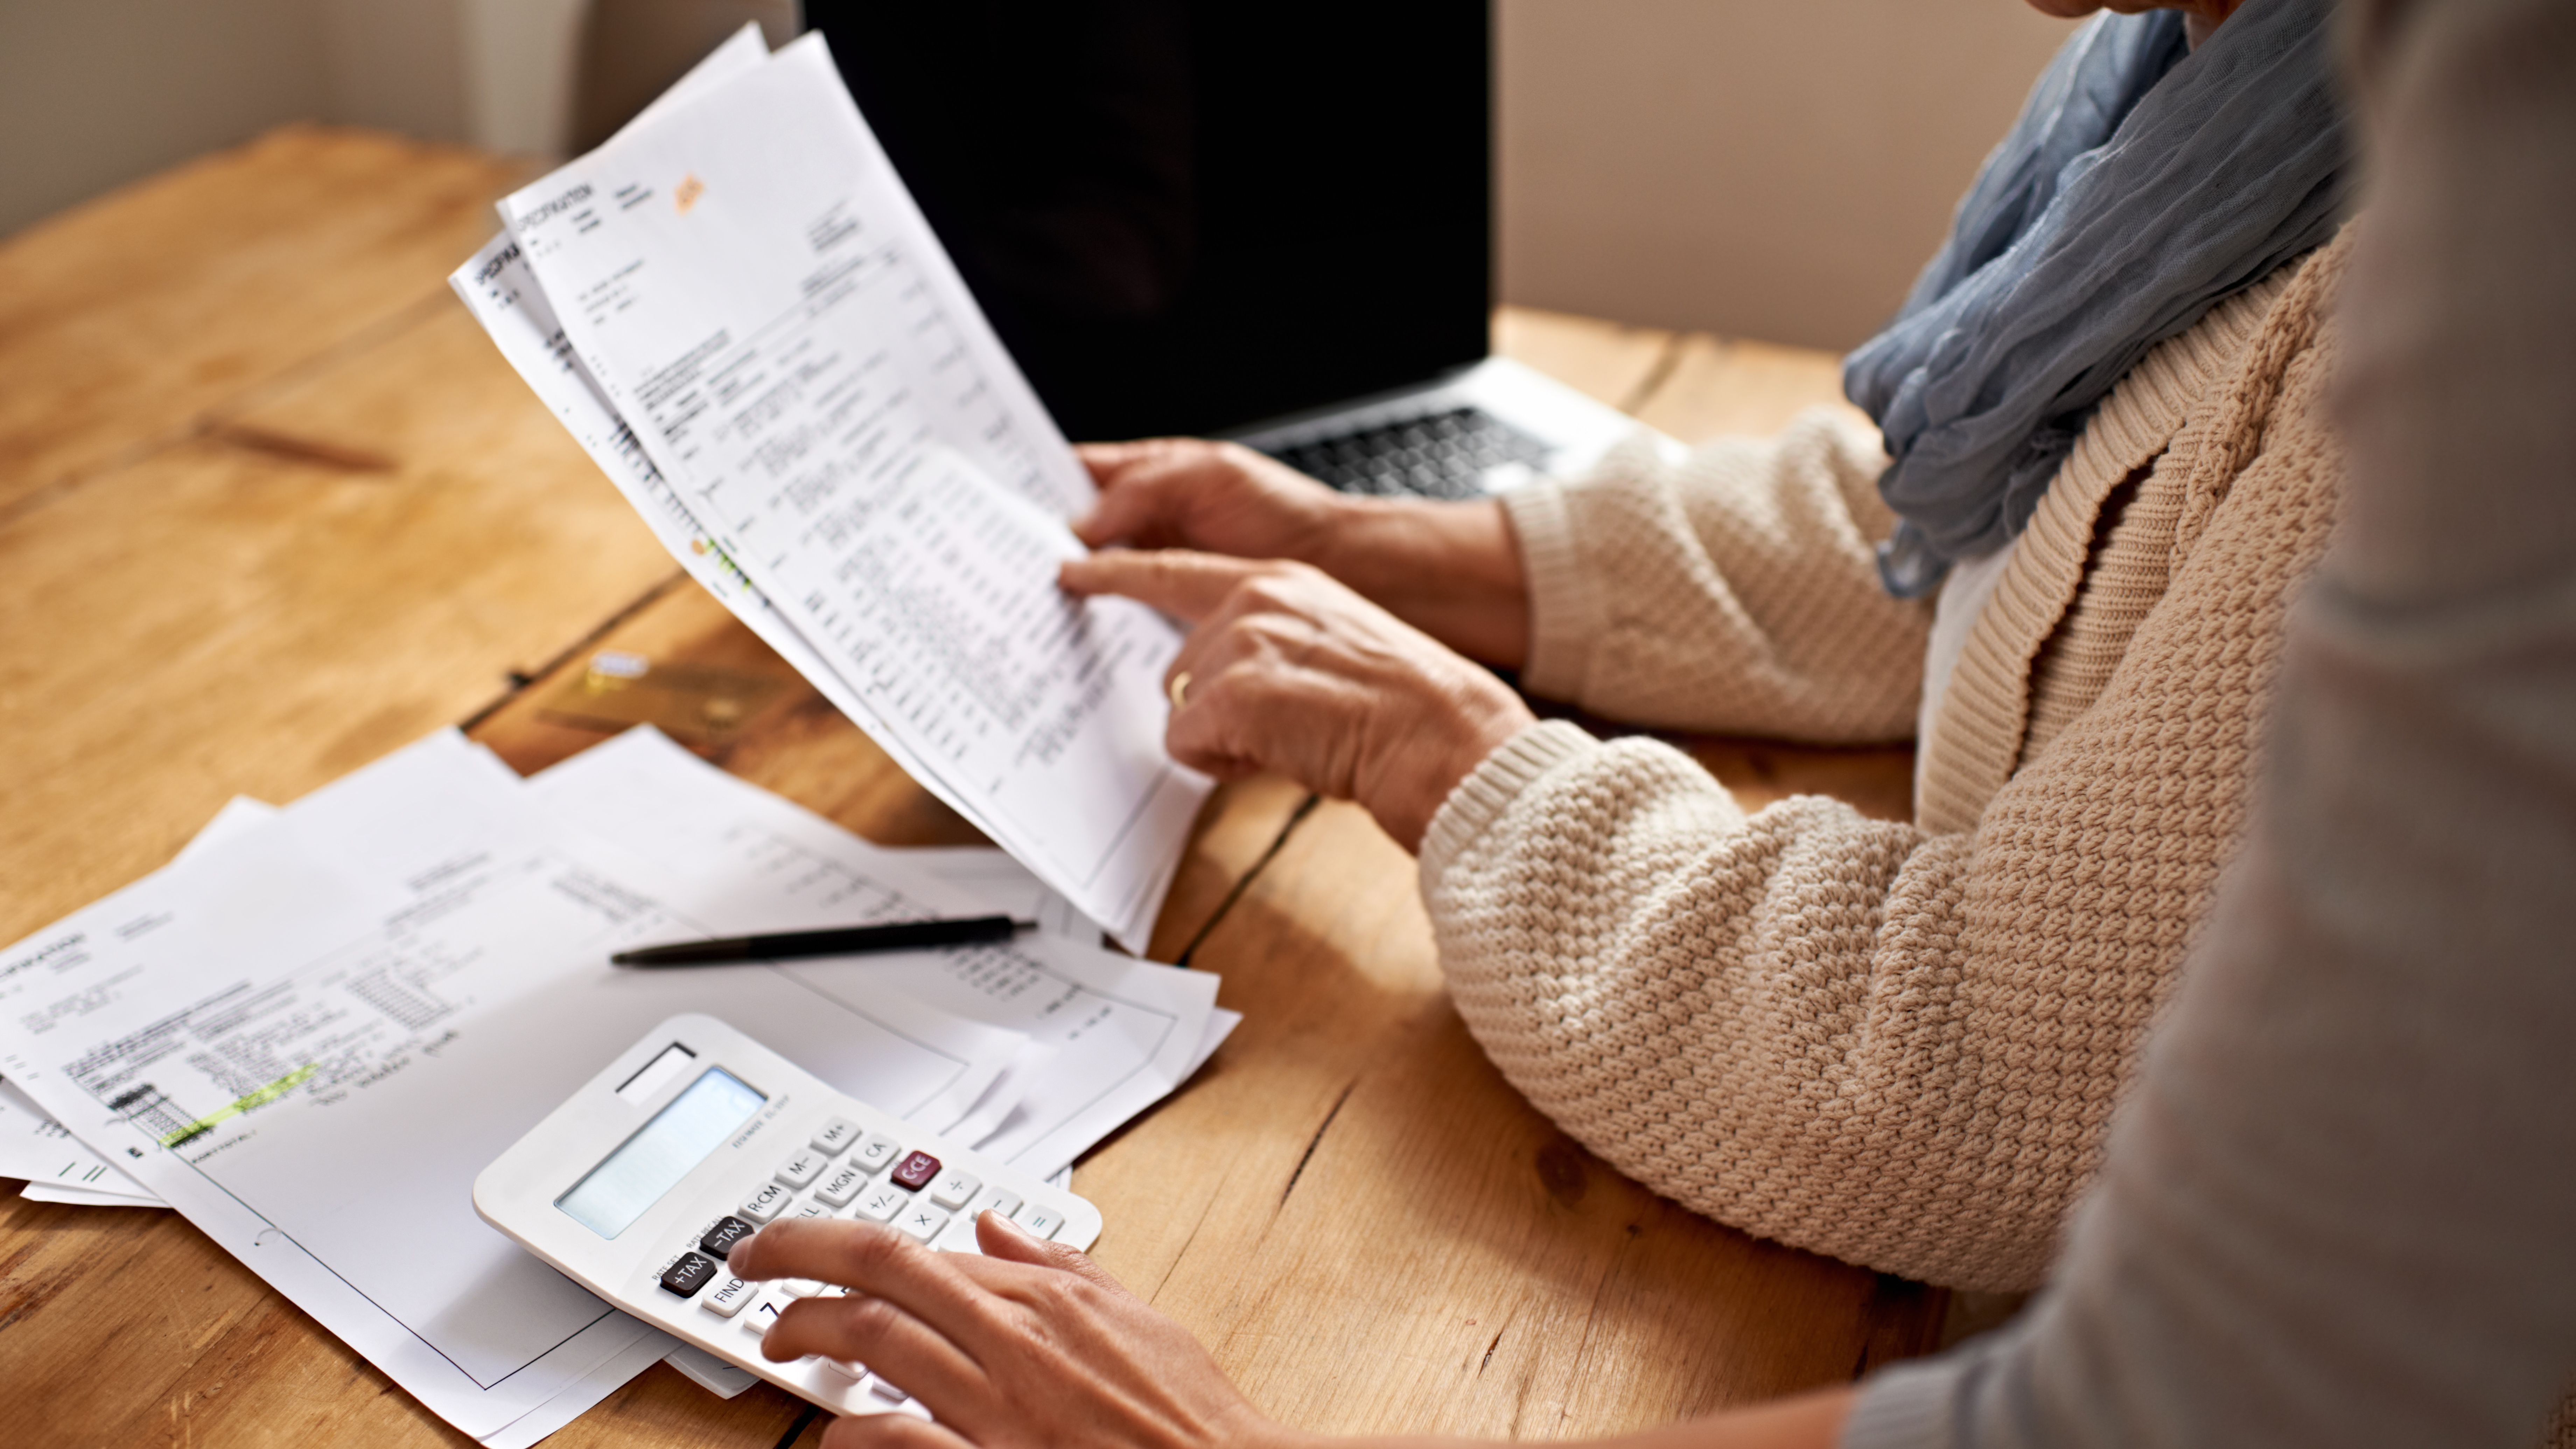 How to Find Financial Assistance for People With Cancer